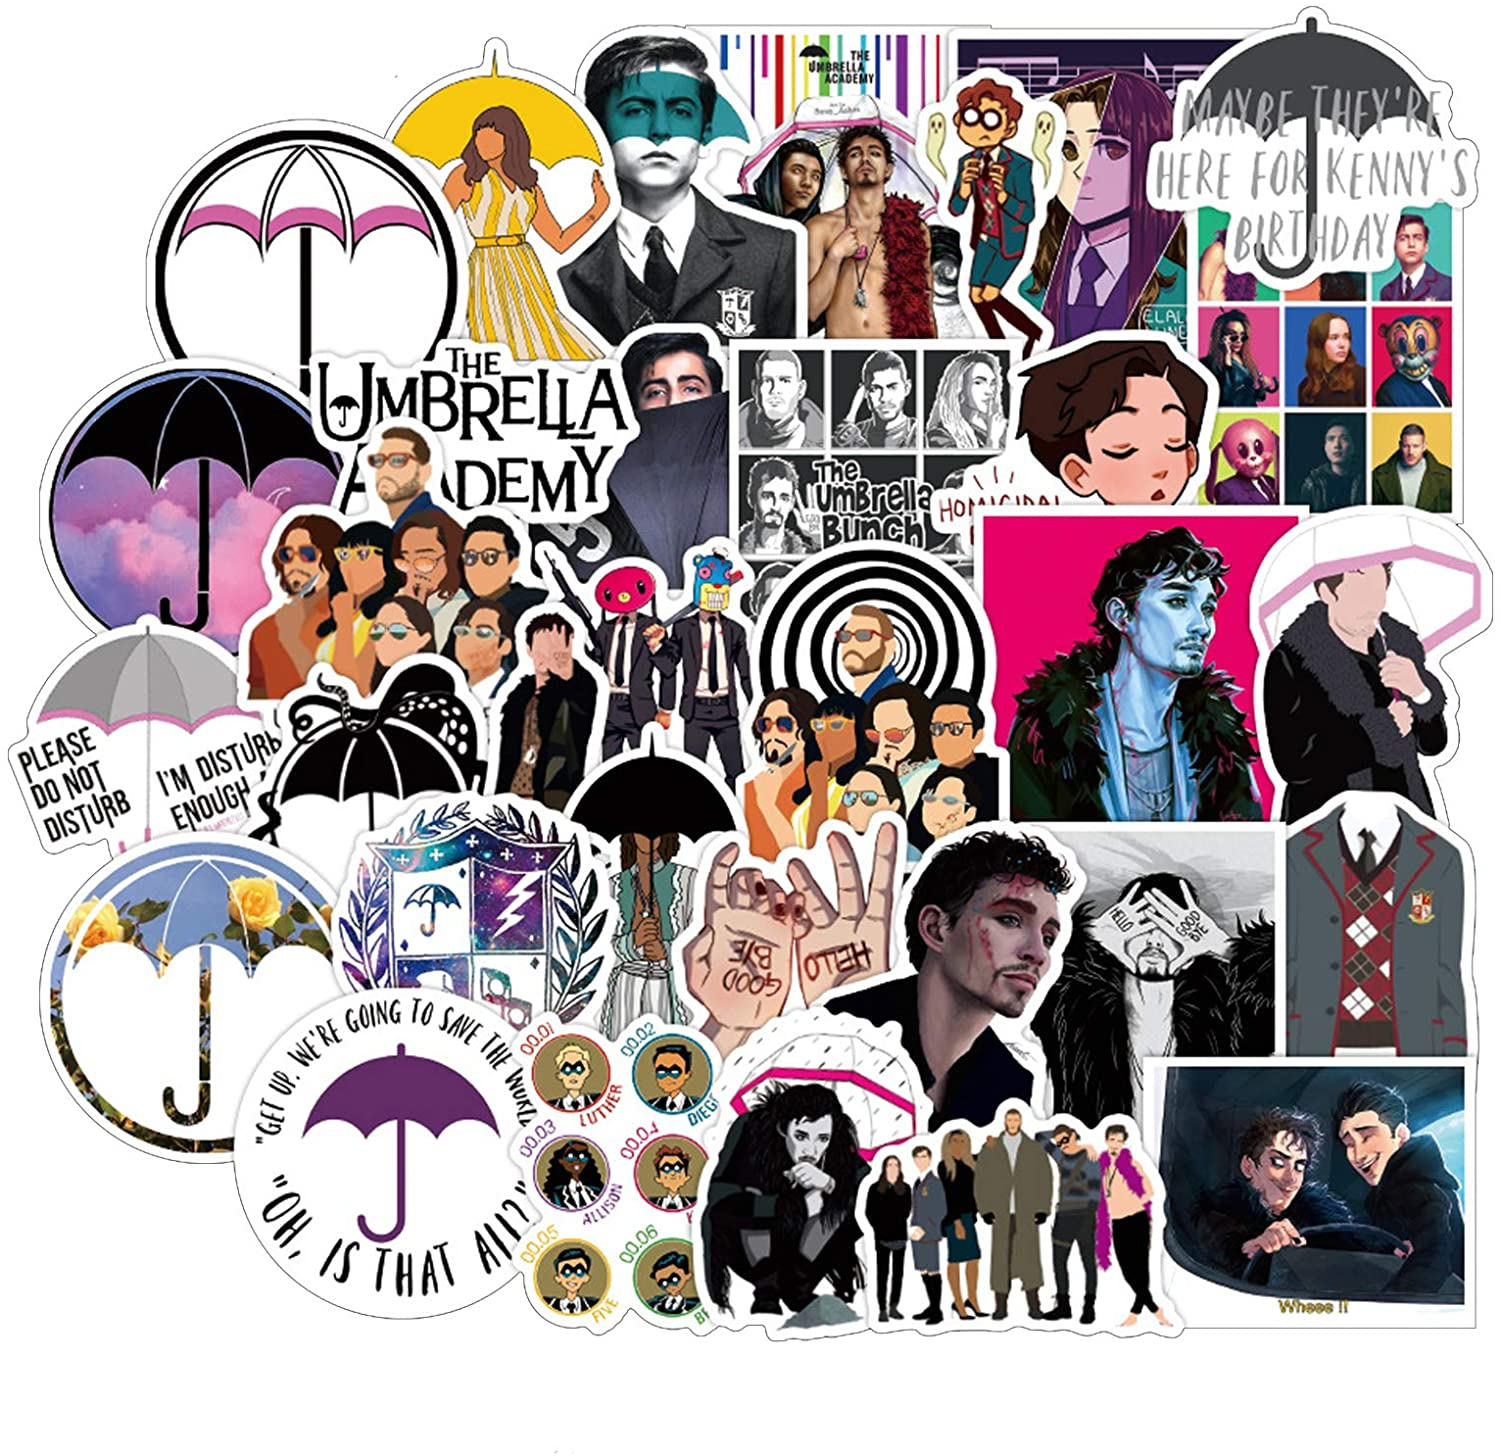 The Umbrella Academy Stickers Vinyl Waterproof Stickers for Laptop,Bumper,Water Bottles,Computer,Phone Car Stickers and Decals,Teens for Adults and car Stickers for Women 50PCS